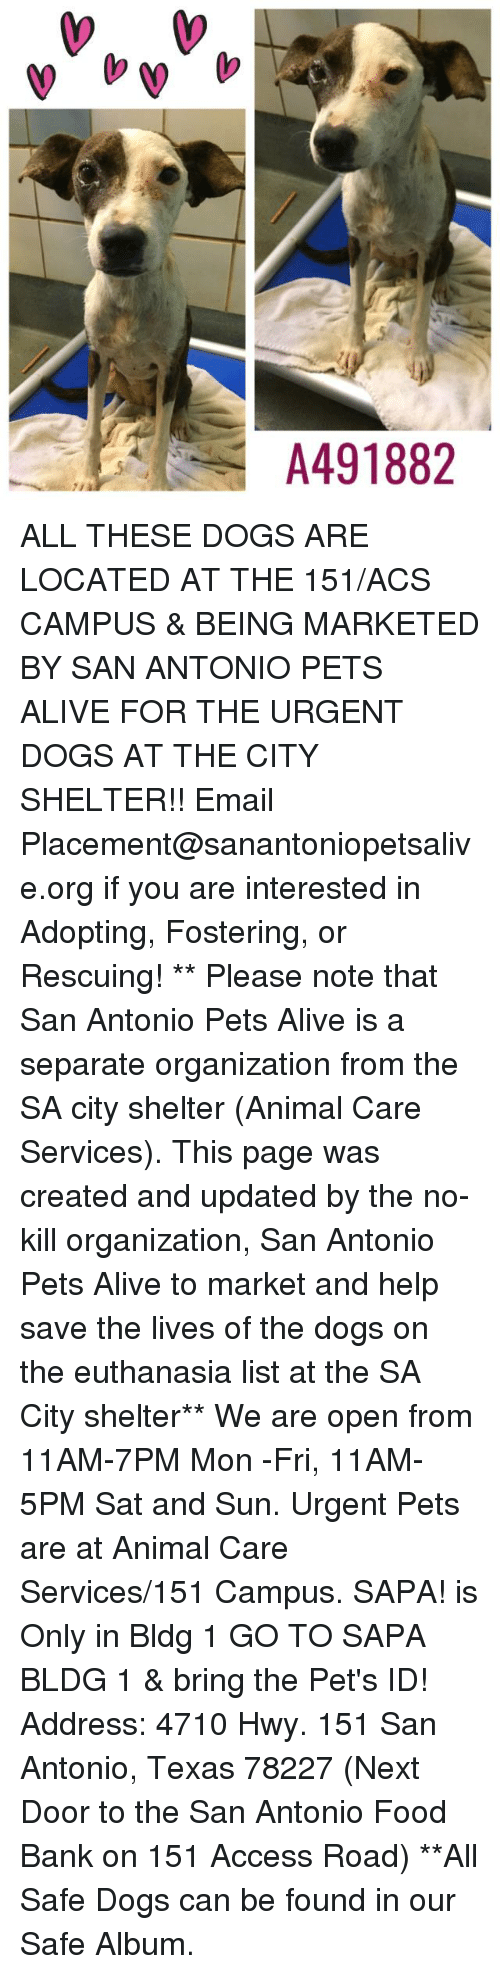 Alive, Dogs, and Food: A491882 ALL THESE DOGS ARE LOCATED AT THE 151/ACS CAMPUS & BEING MARKETED BY SAN ANTONIO PETS ALIVE FOR THE URGENT DOGS AT THE CITY SHELTER!!  Email Placement@sanantoniopetsalive.org if you are interested in Adopting, Fostering, or Rescuing!                                                                                                                                                                                                                                                                                                                                                             ** Please note that San Antonio Pets Alive is a separate organization from the SA city shelter (Animal Care Services). This page was created and updated by the no-kill organization, San Antonio Pets Alive to market and help save the lives of the dogs on the euthanasia list at the SA City shelter**  We are open from 11AM-7PM Mon -Fri, 11AM-5PM Sat and Sun. Urgent Pets are at Animal Care Services/151 Campus. SAPA! is Only in Bldg 1 GO TO SAPA BLDG 1 & bring the Pet's ID! Address: 4710 Hwy. 151 San Antonio, Texas 78227 (Next Door to the San Antonio Food Bank on 151 Access Road) **All Safe Dogs can be found in our Safe Album.